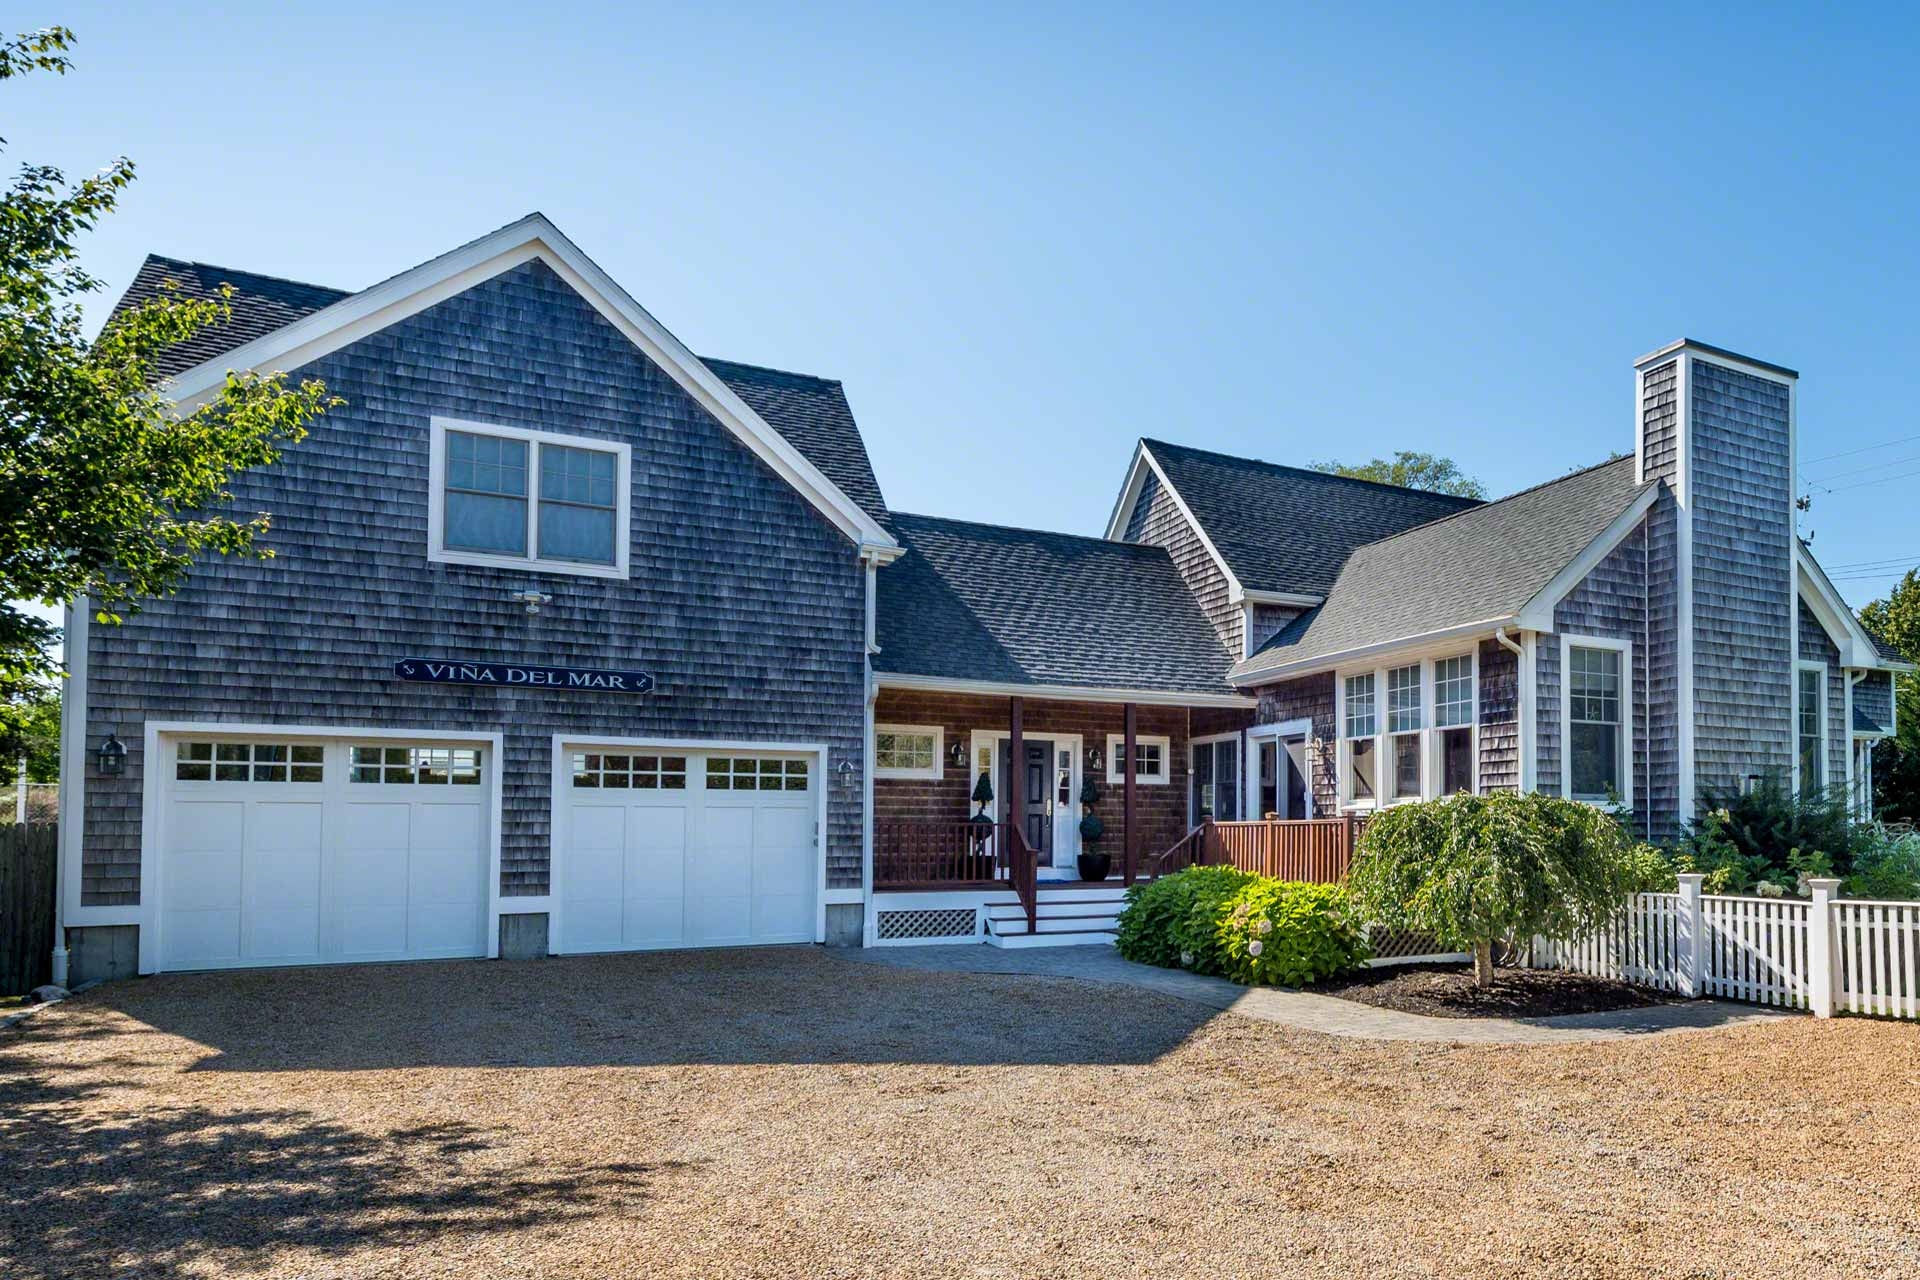 20 Edgartown West Tisbury Road, Edgartown  Floor: Featured